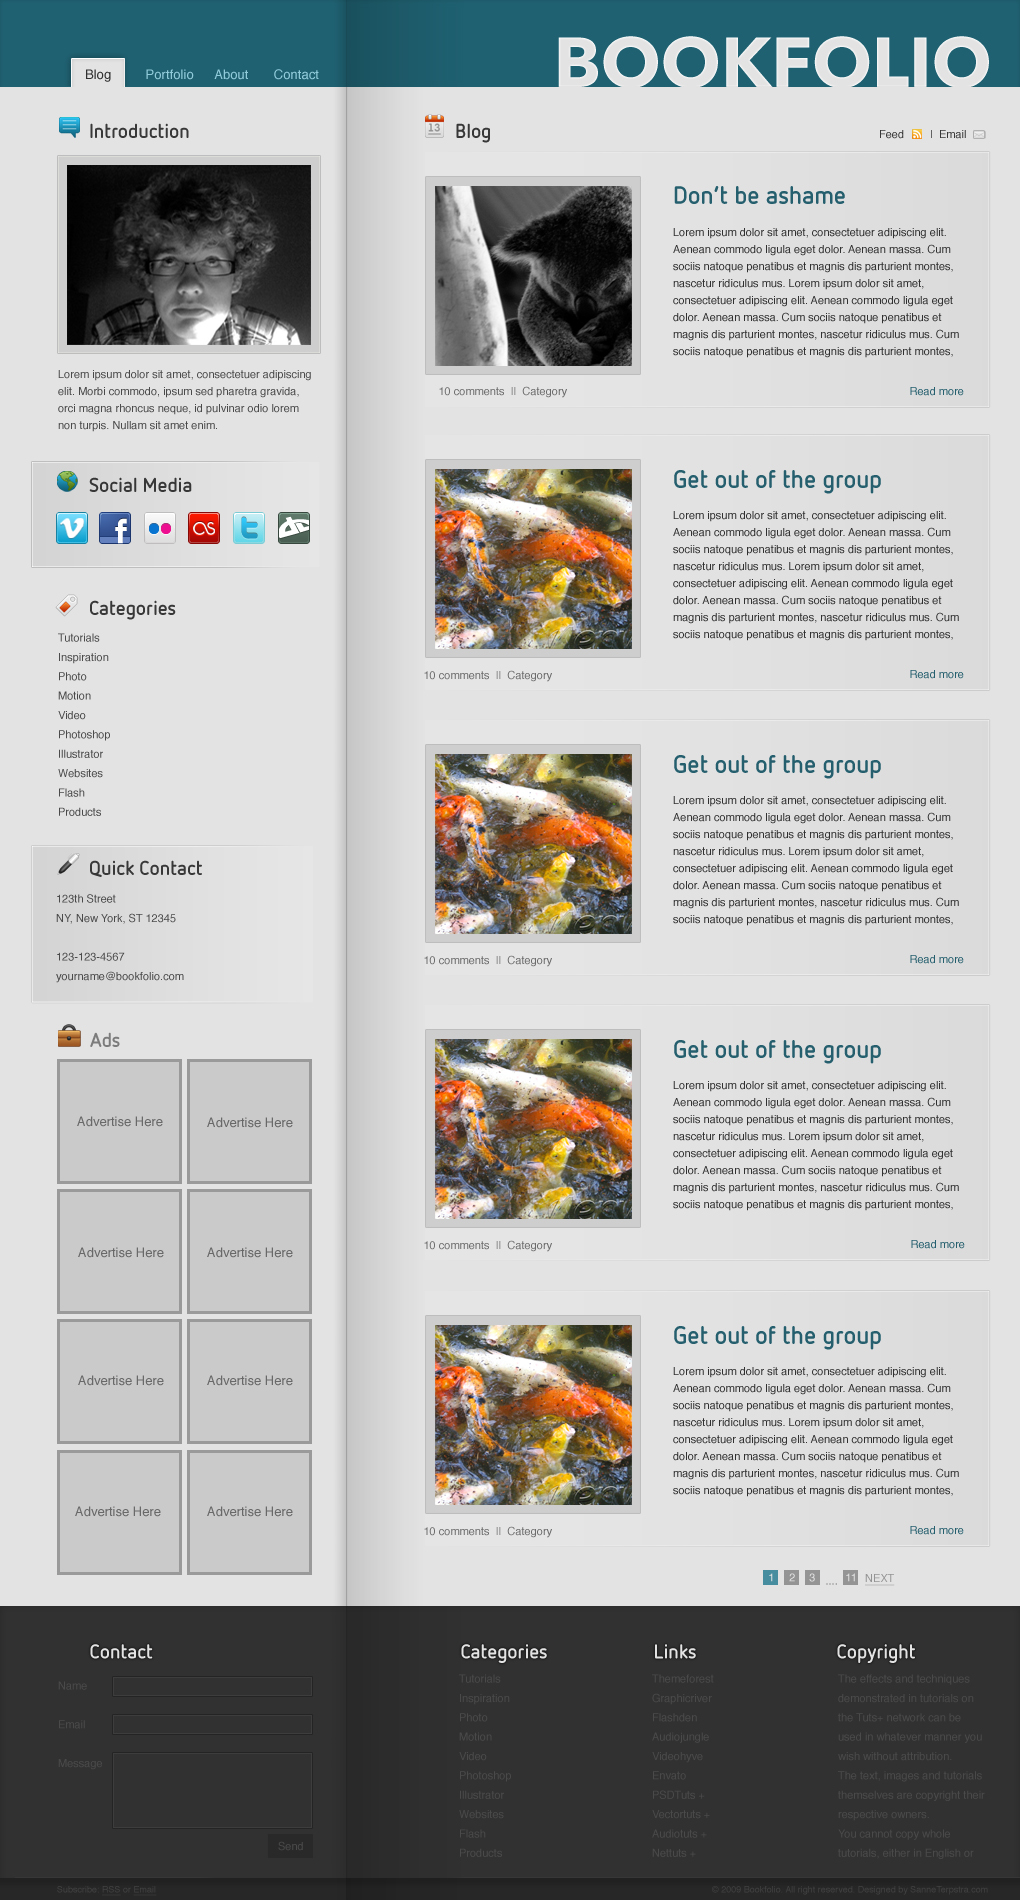 Free Download BookFolio - Blog / Personal site Nulled Latest Version